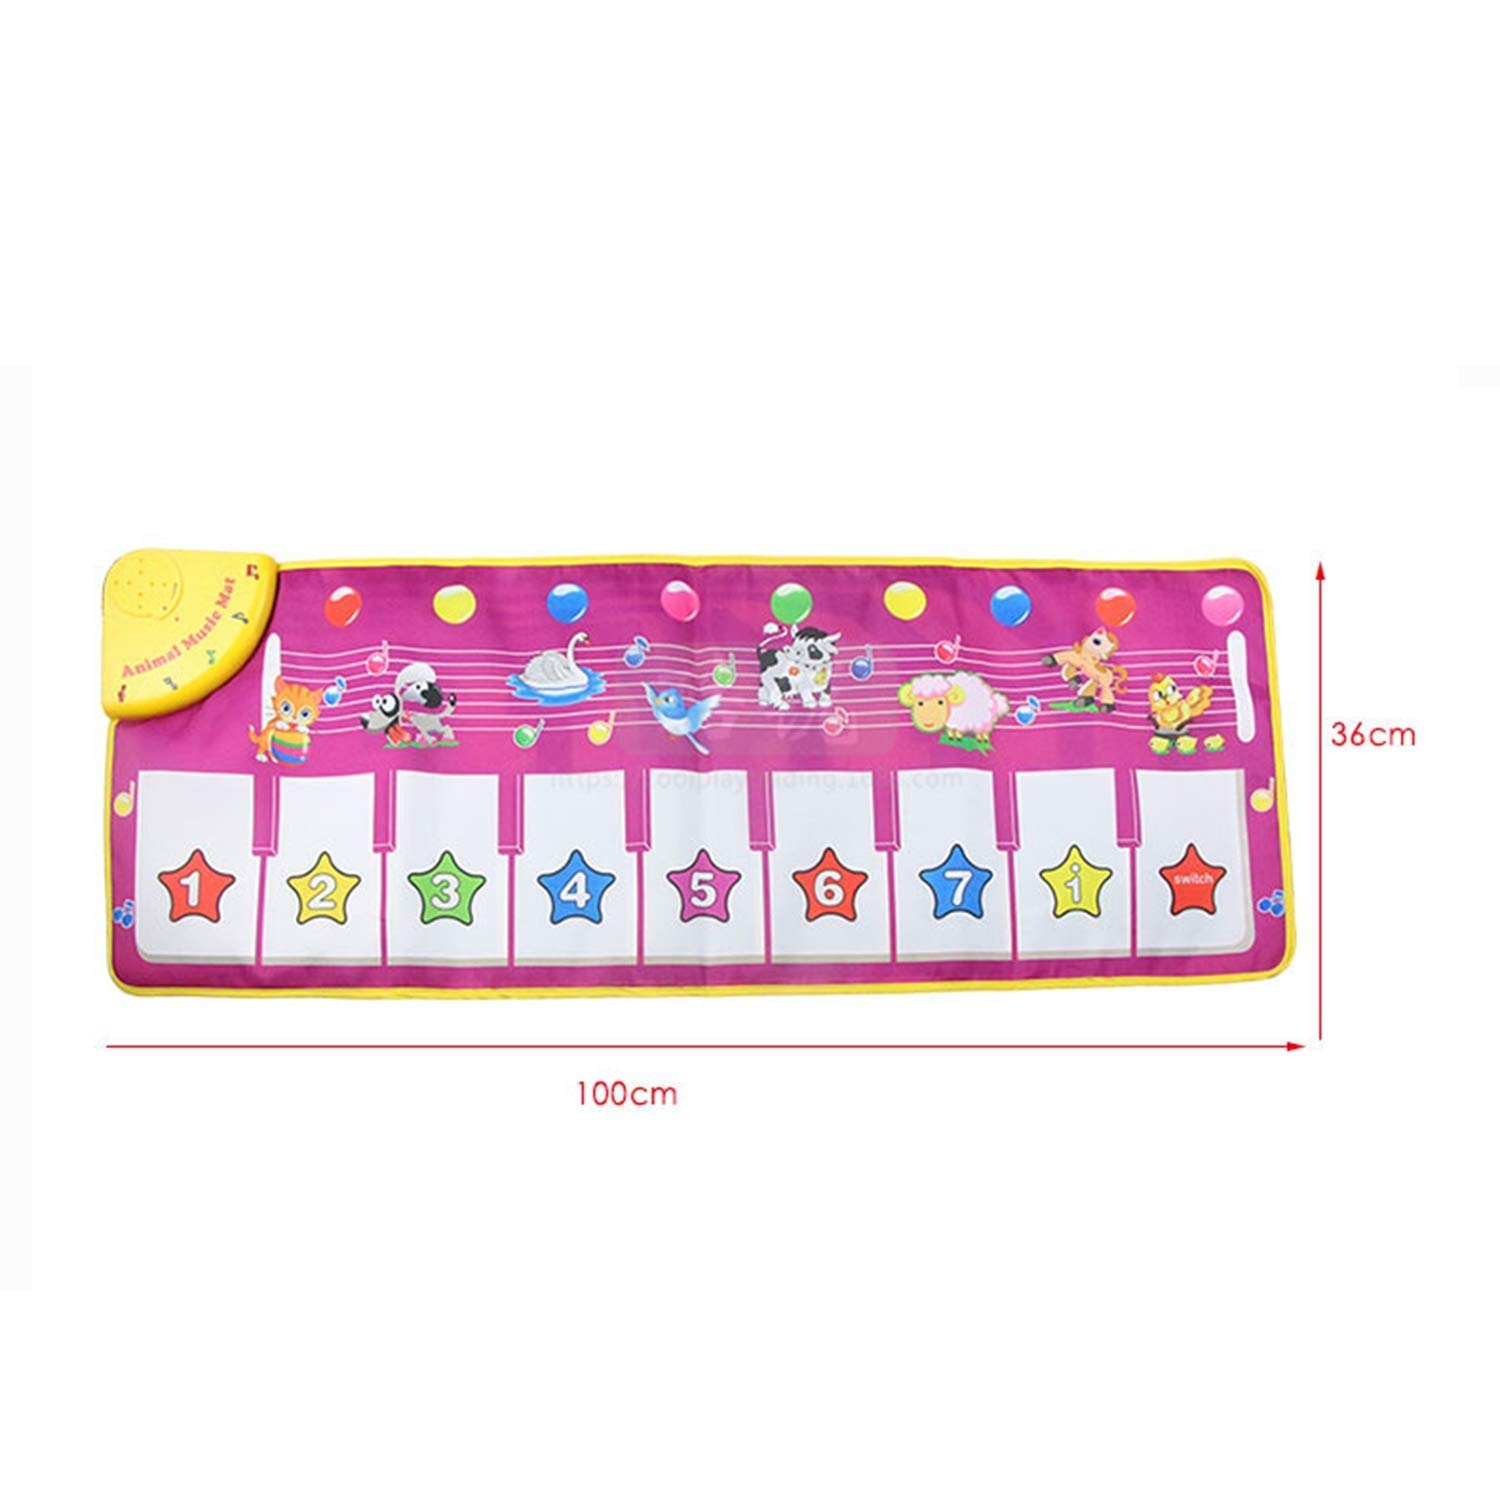 Creative Piano Game Mat, Multi-Function Music Singing Gym Carpet Mat, Children's Entertainment Mat (100x36 cm) by Sunny (Image #2)